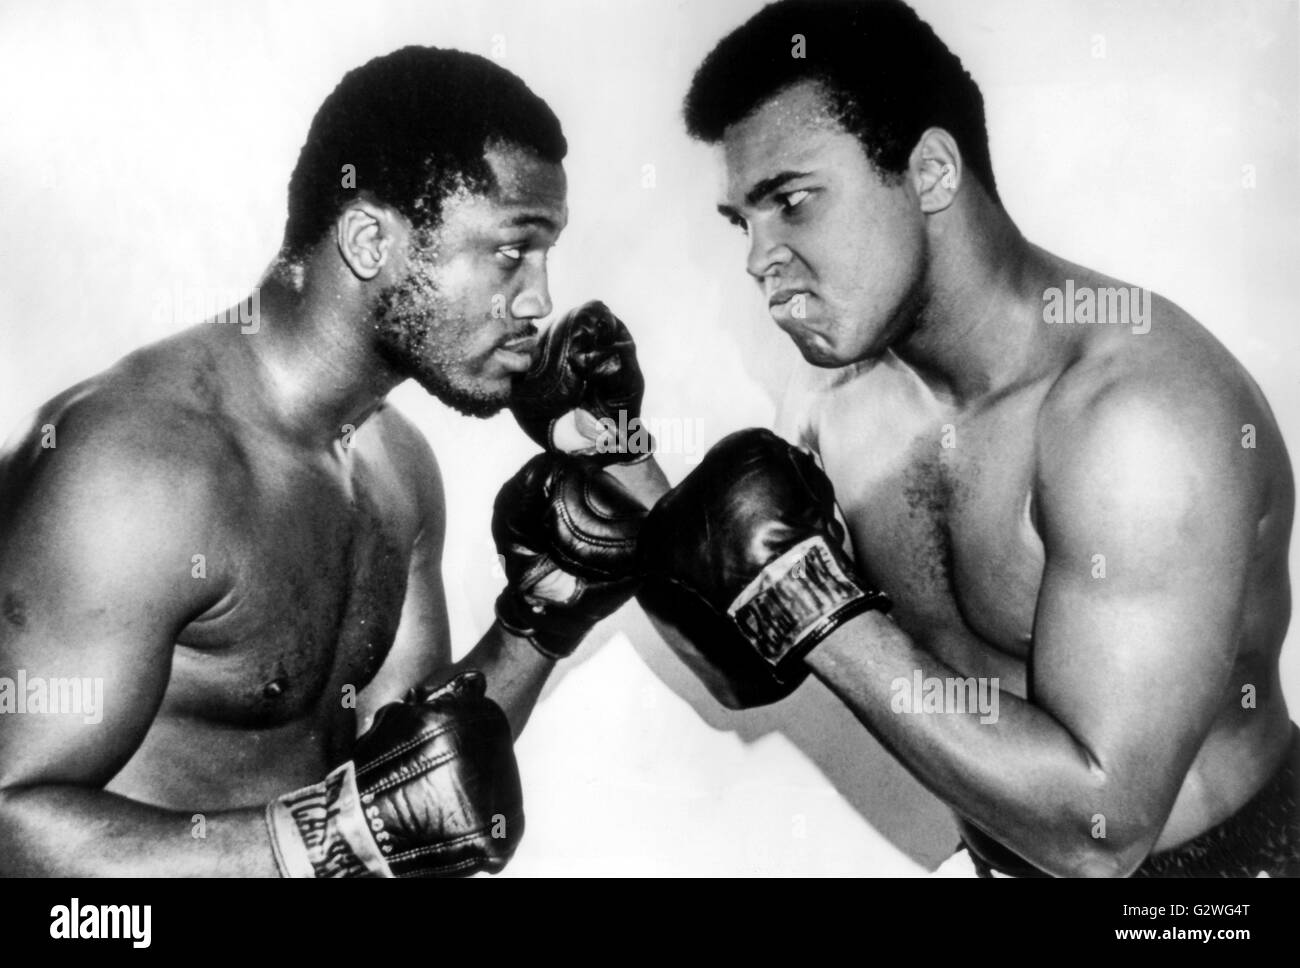 FILE - An undated file picture shows US heavyweight boxers Muhammad Ali (R) and Joe Frazier (L) posing in early - Stock Image